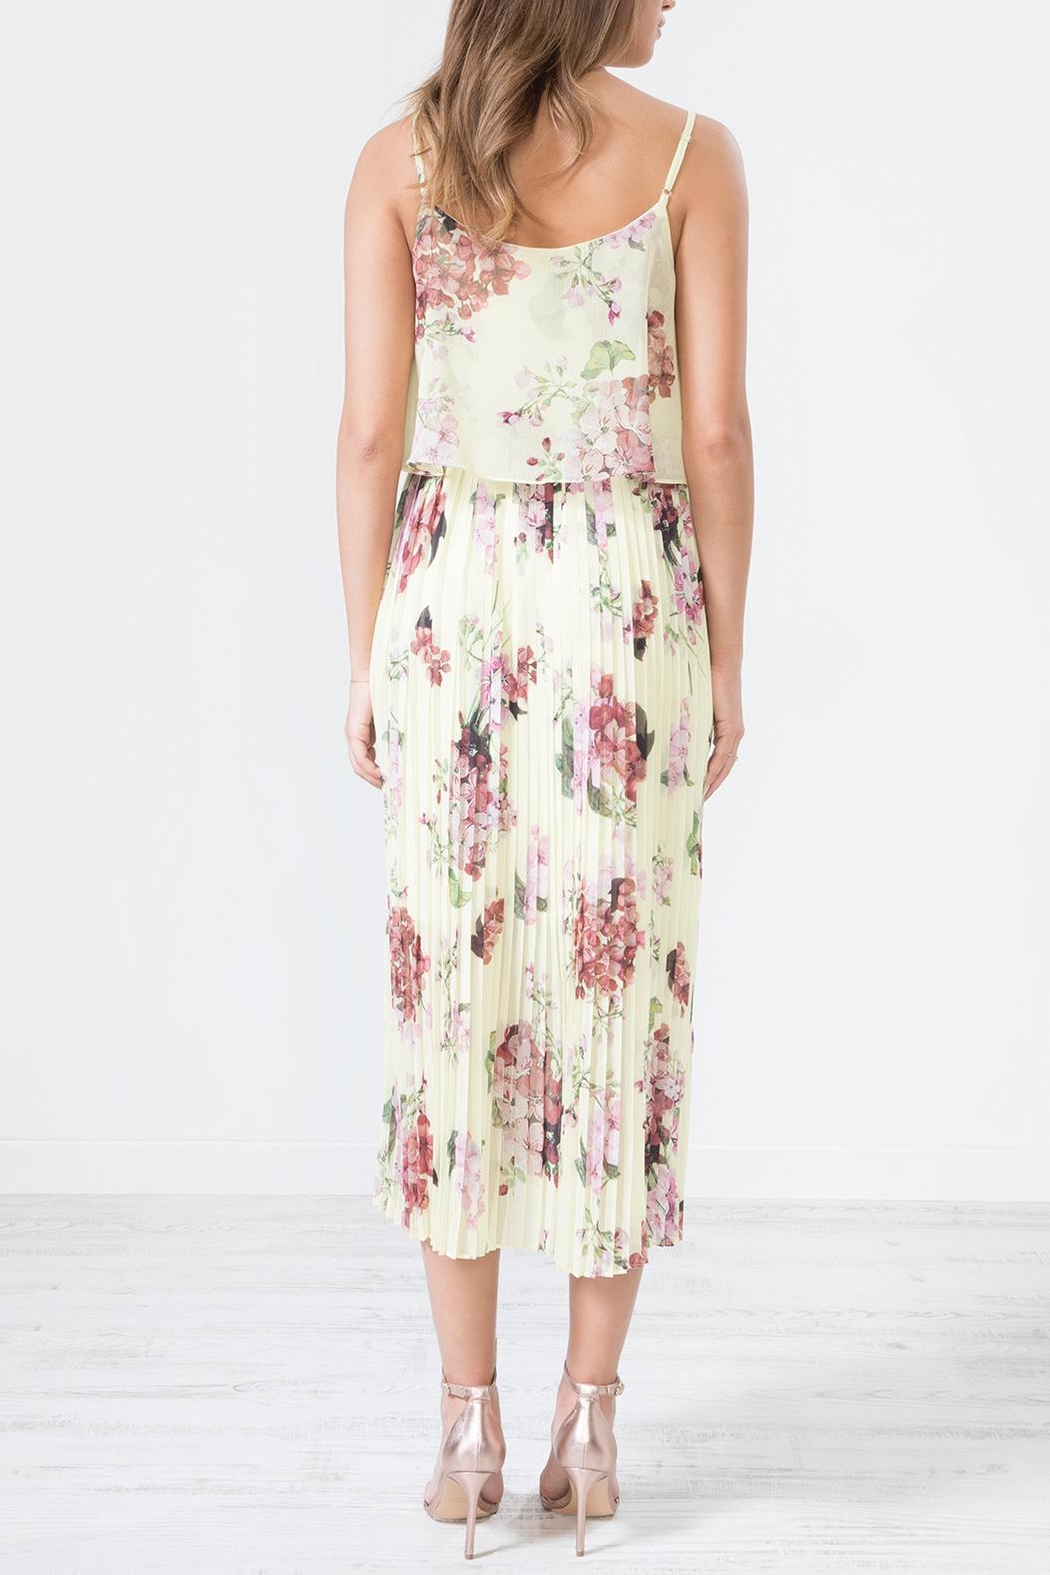 Urban Touch Blue Floral Dress - Side Cropped Image